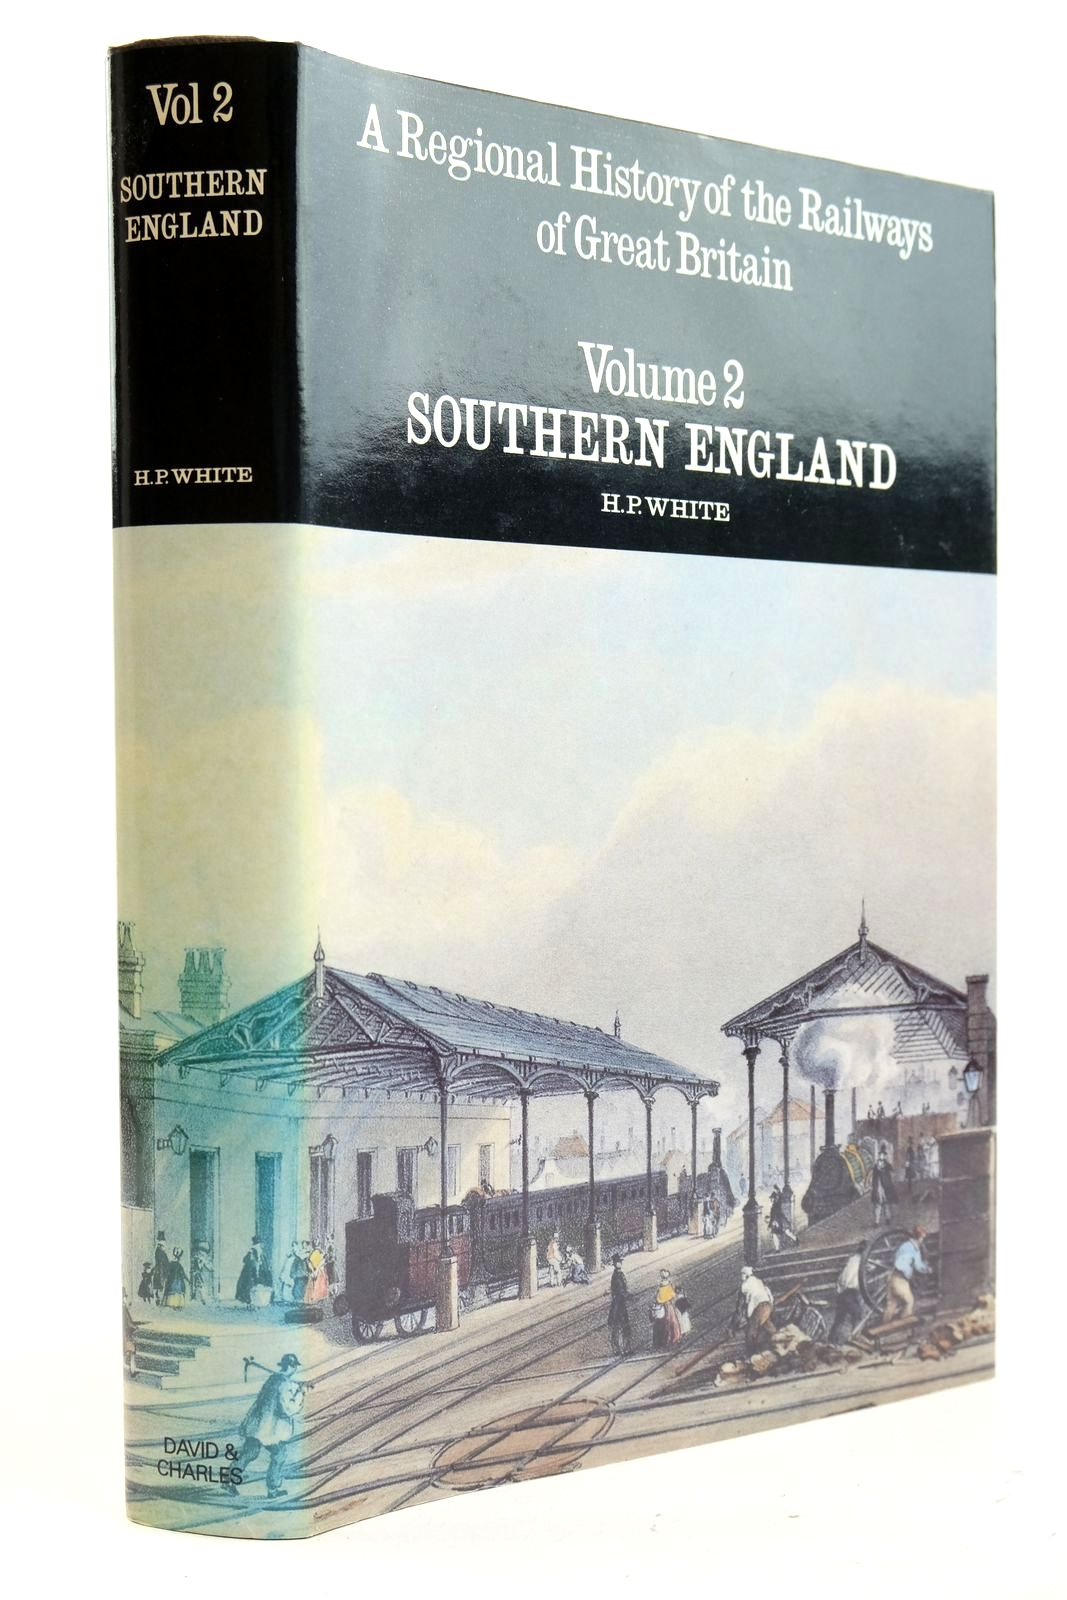 Photo of A REGIONAL HISTORY OF THE RAILWAYS OF GREAT BRITAIN VOLUME II SOUTHERN ENGLAND written by White, H.P. published by David & Charles (STOCK CODE: 2133021)  for sale by Stella & Rose's Books